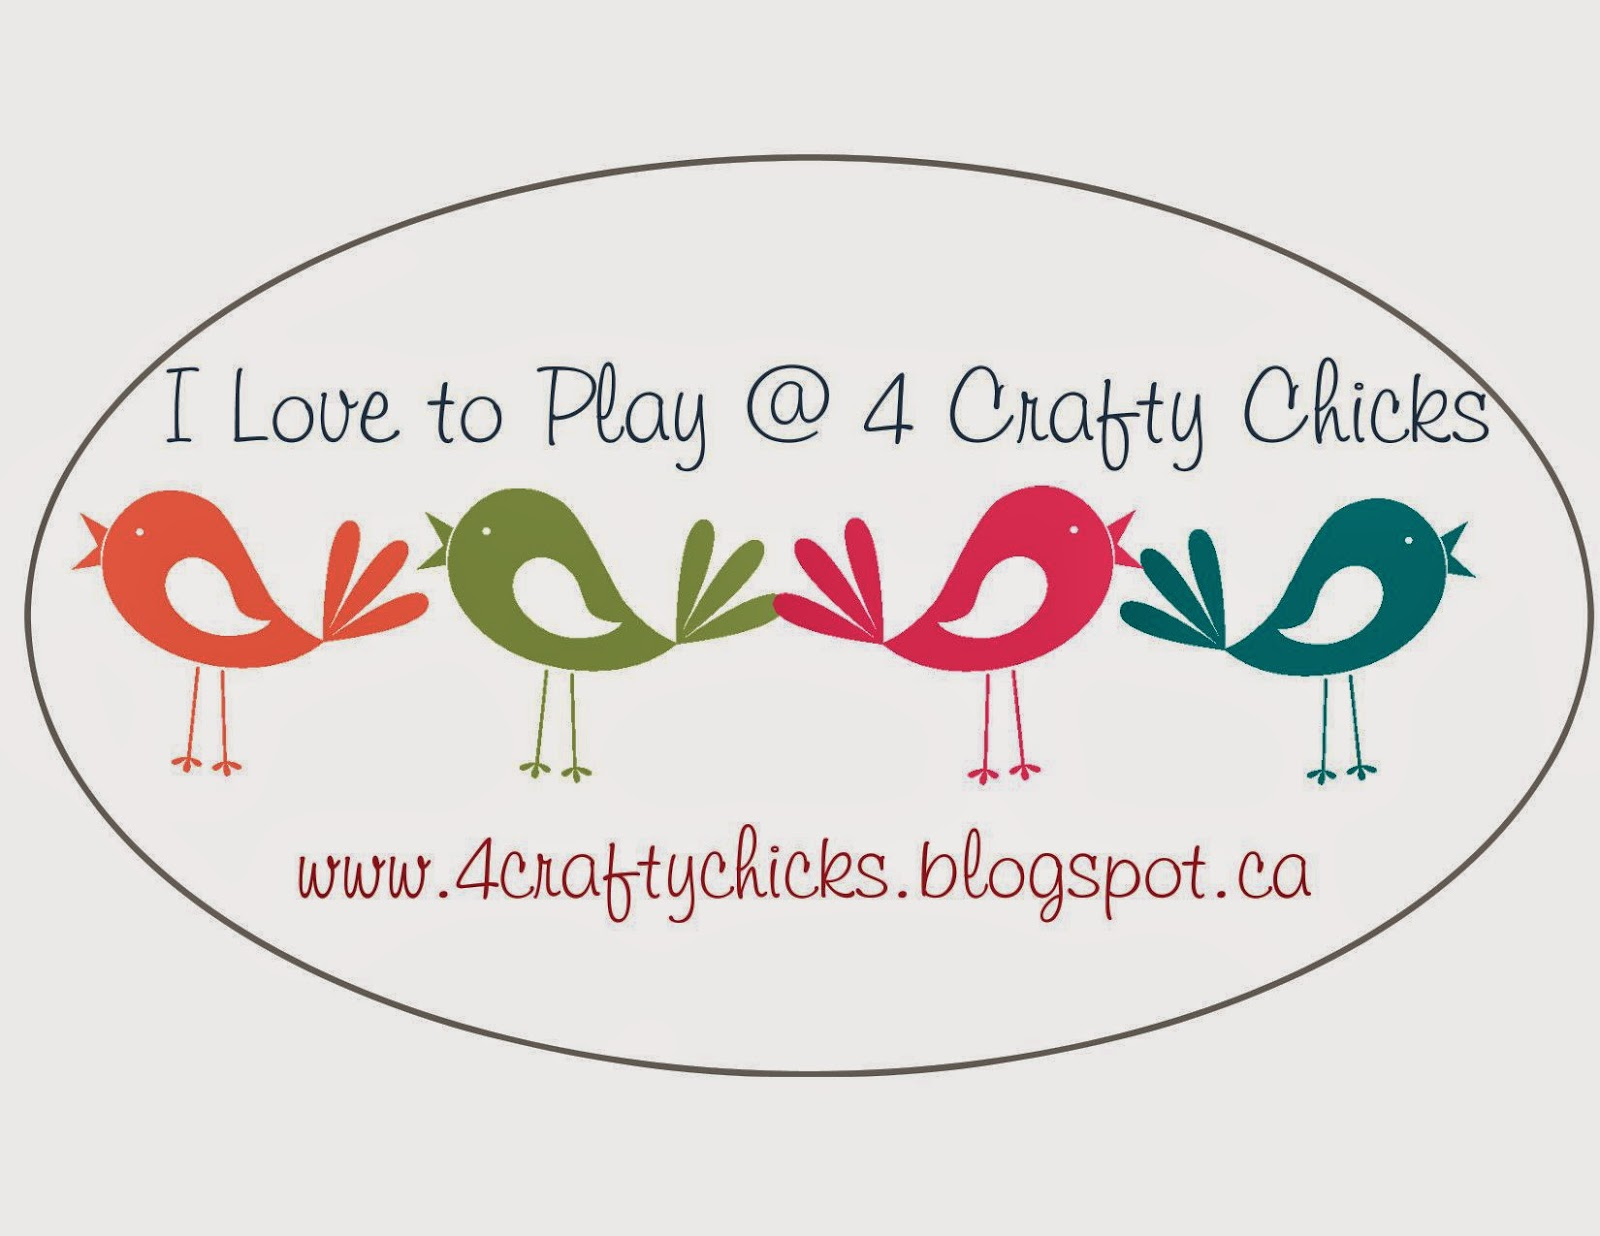 http://www.4craftychicks.blogspot.ca/